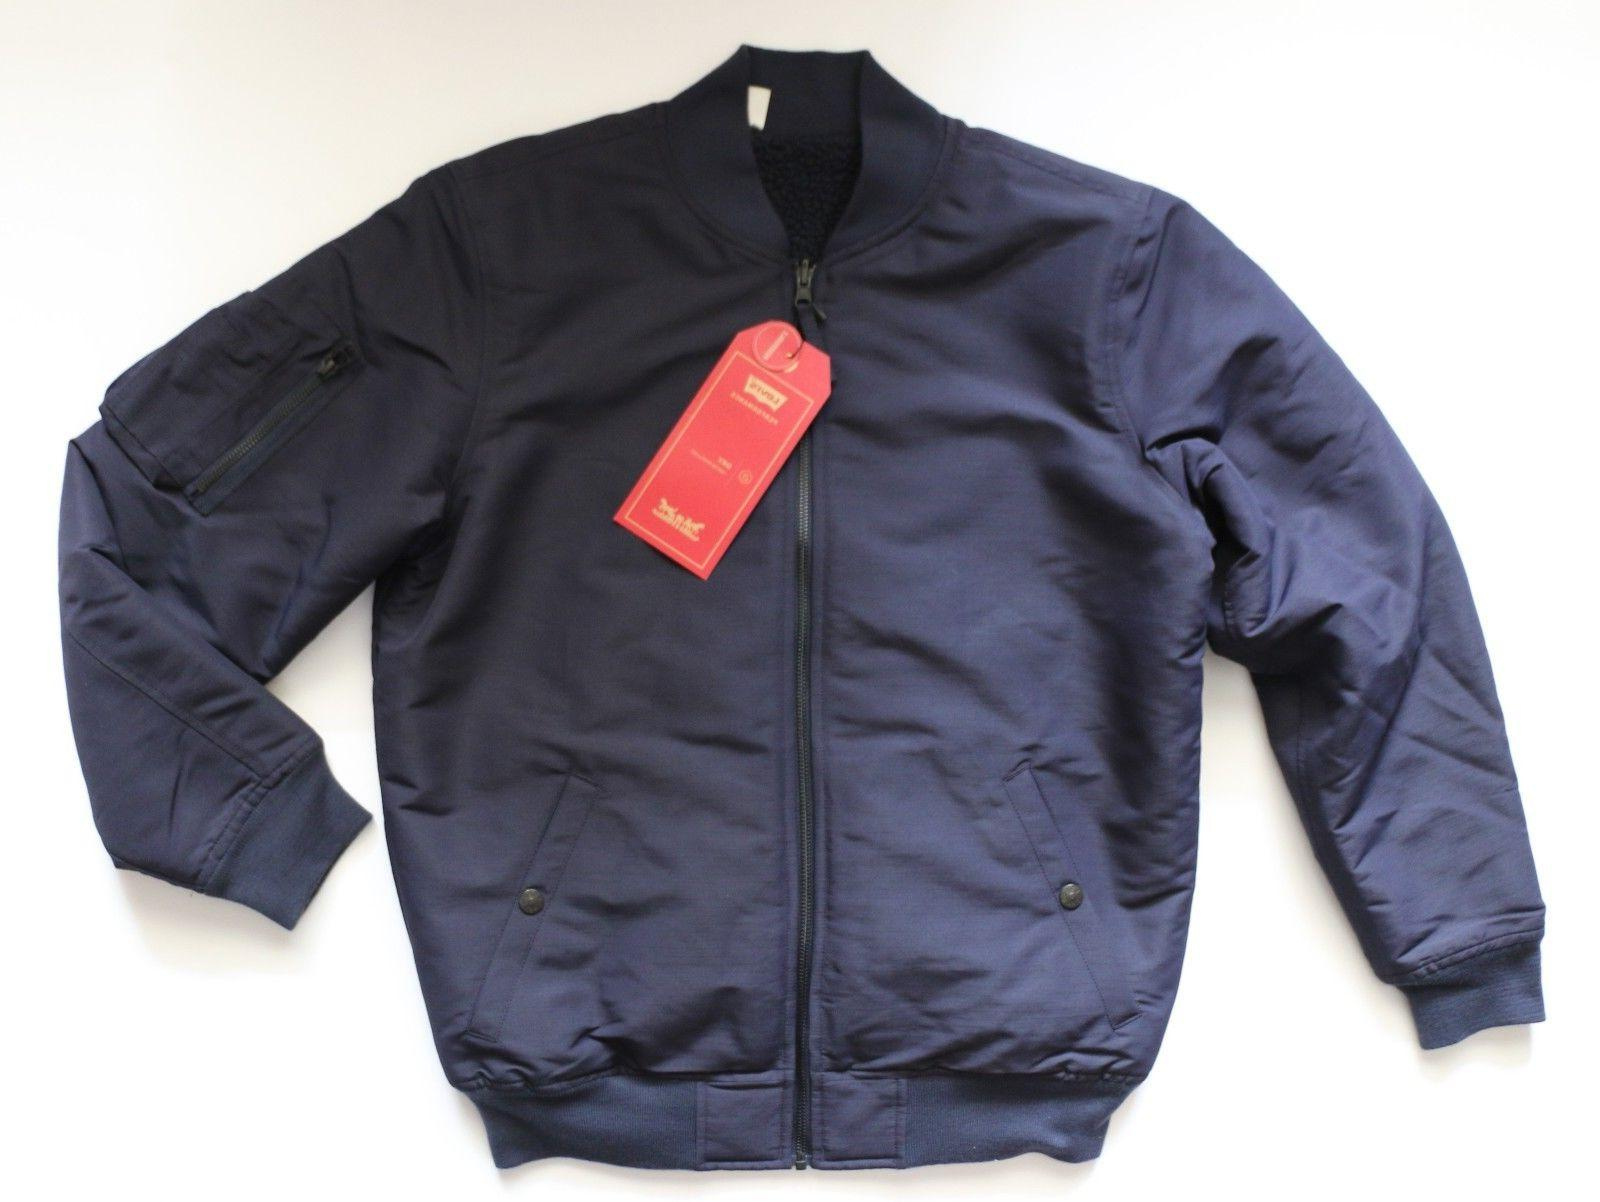 New LEVI'S Reversible Bomber Jacket Men's Sizes S, M, L, XL